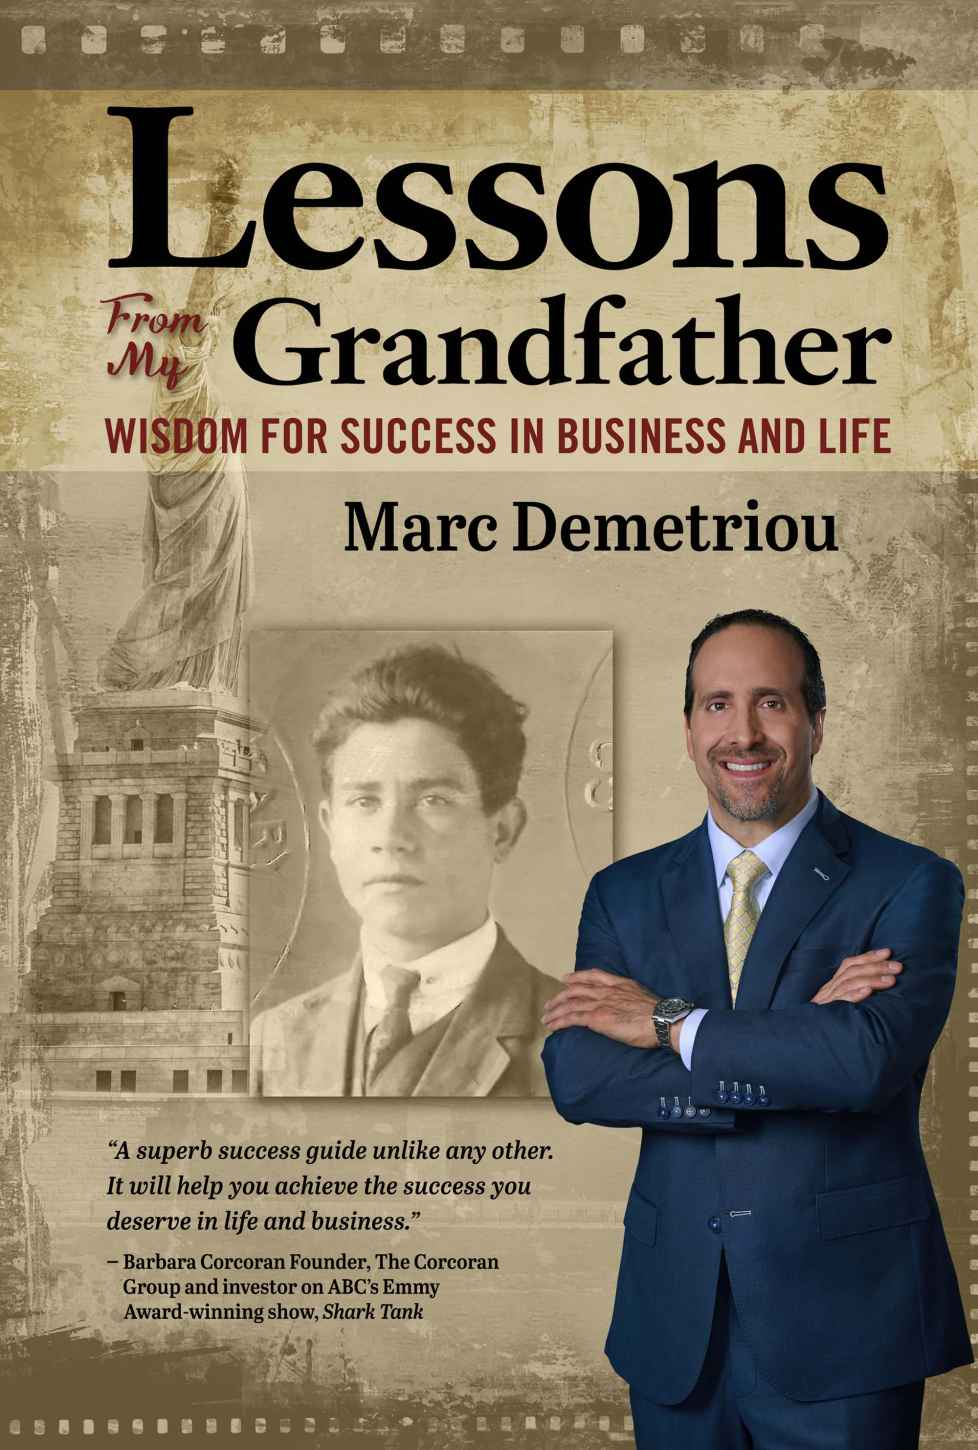 Lessons from my Grandfather: Guest – Marc Demetriou